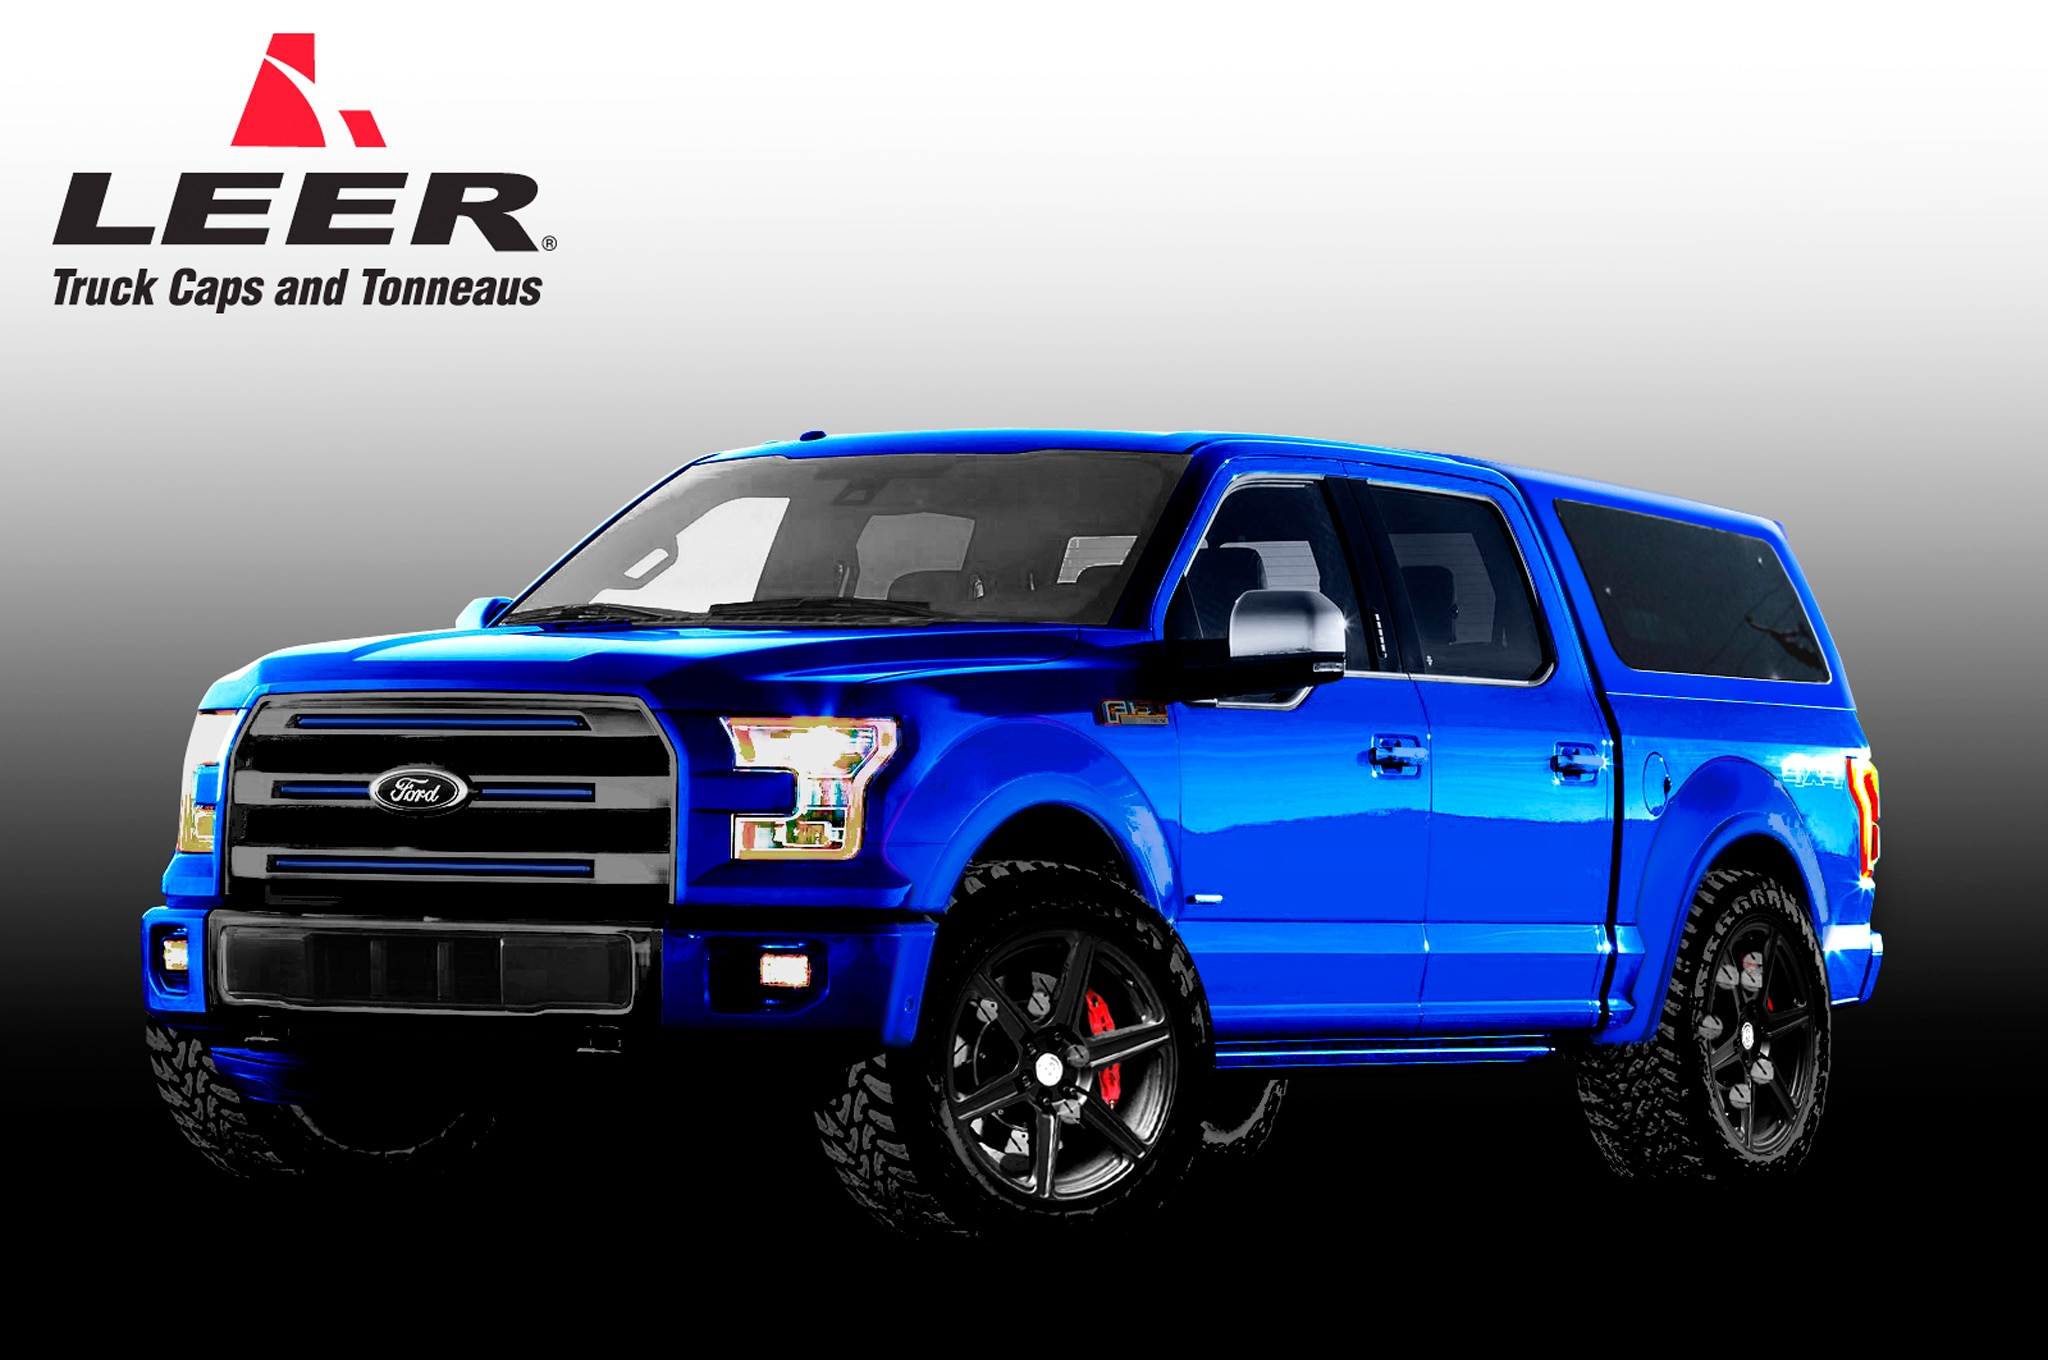 Modified Ford F-150 Trucks Head to the 2015 SEMA Show